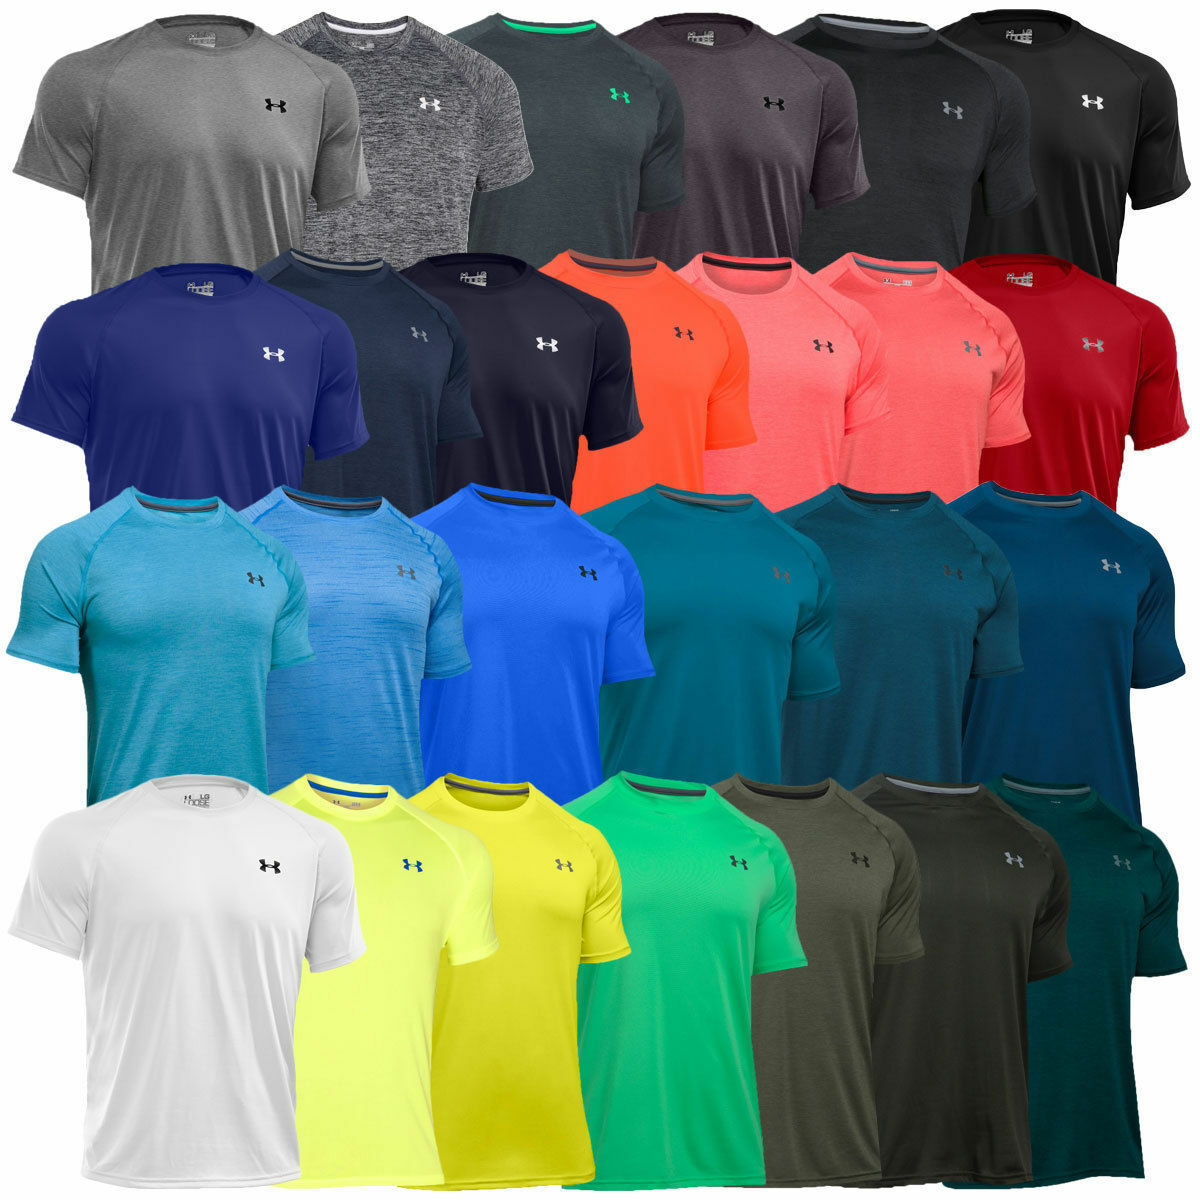 Under Armour 2018 Mens Ua Tech Short Sleeve Training